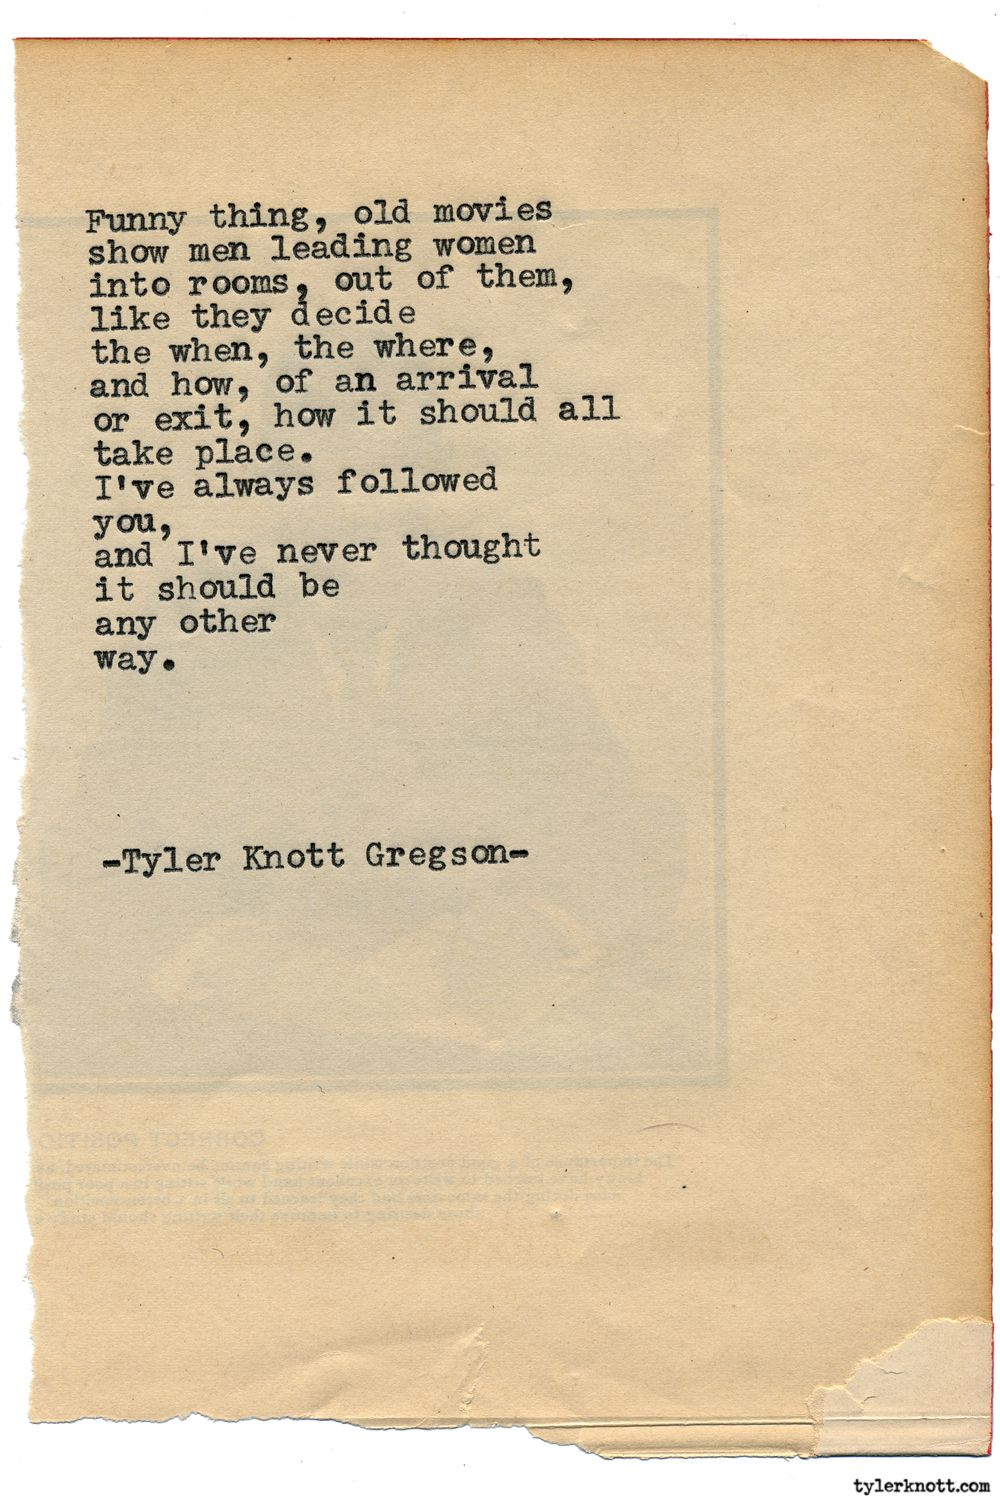 Typewriter Series #1790 by Tyler Knott Gregson